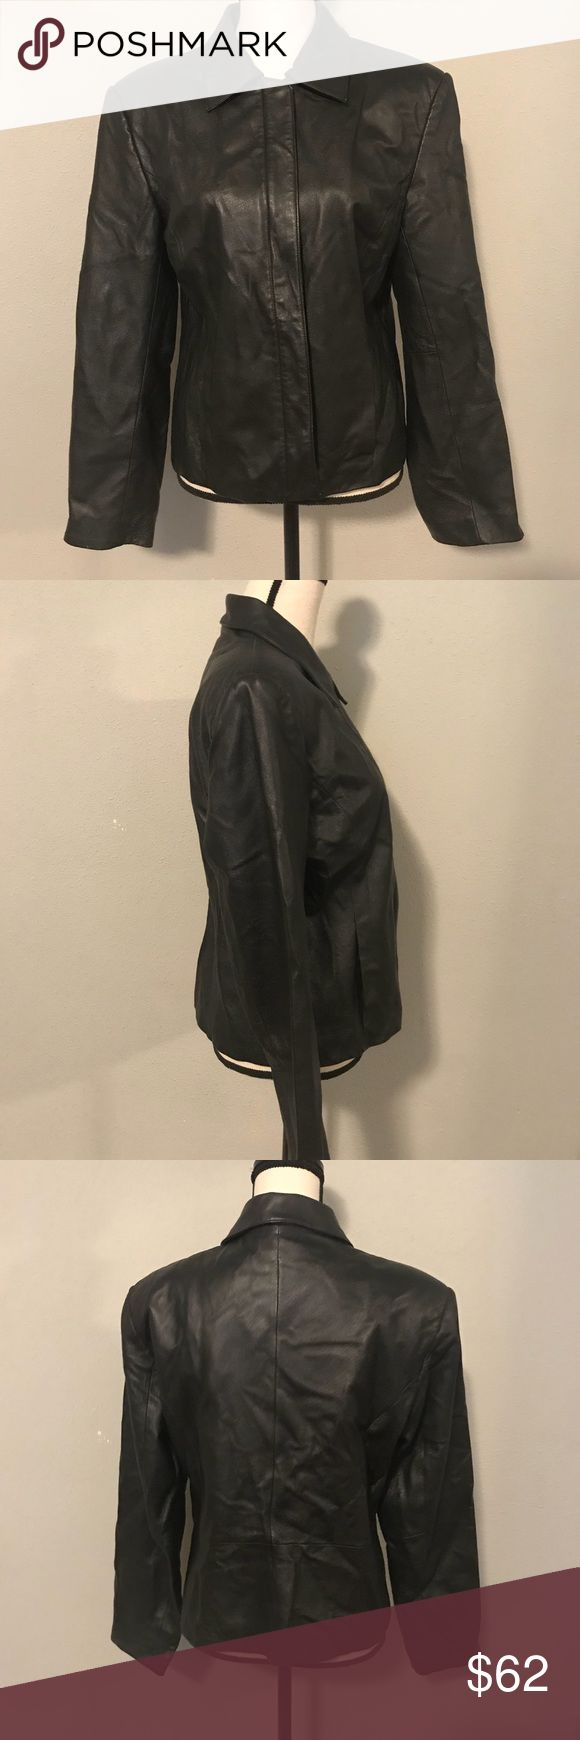 "[Clio] Black Leather Jacket Clio, black leather jacket. Fitted. Missing zipper handle.  Size: 10 Material: 100% Leather Shell Condition: Pre-owned. Fair. Approx. Measurements:  ▪️Pit to Pit: 20"" ▪️Arm: 23.5"" ▪️Length: 23""  ❤️❤️❤️SHIP SAME DAY OR NEXT DAY❤️❤️❤️ ❤️❤️REASONABLE OFFERS ARE CONSIDERED❤️❤️ Clio Jackets & Coats"